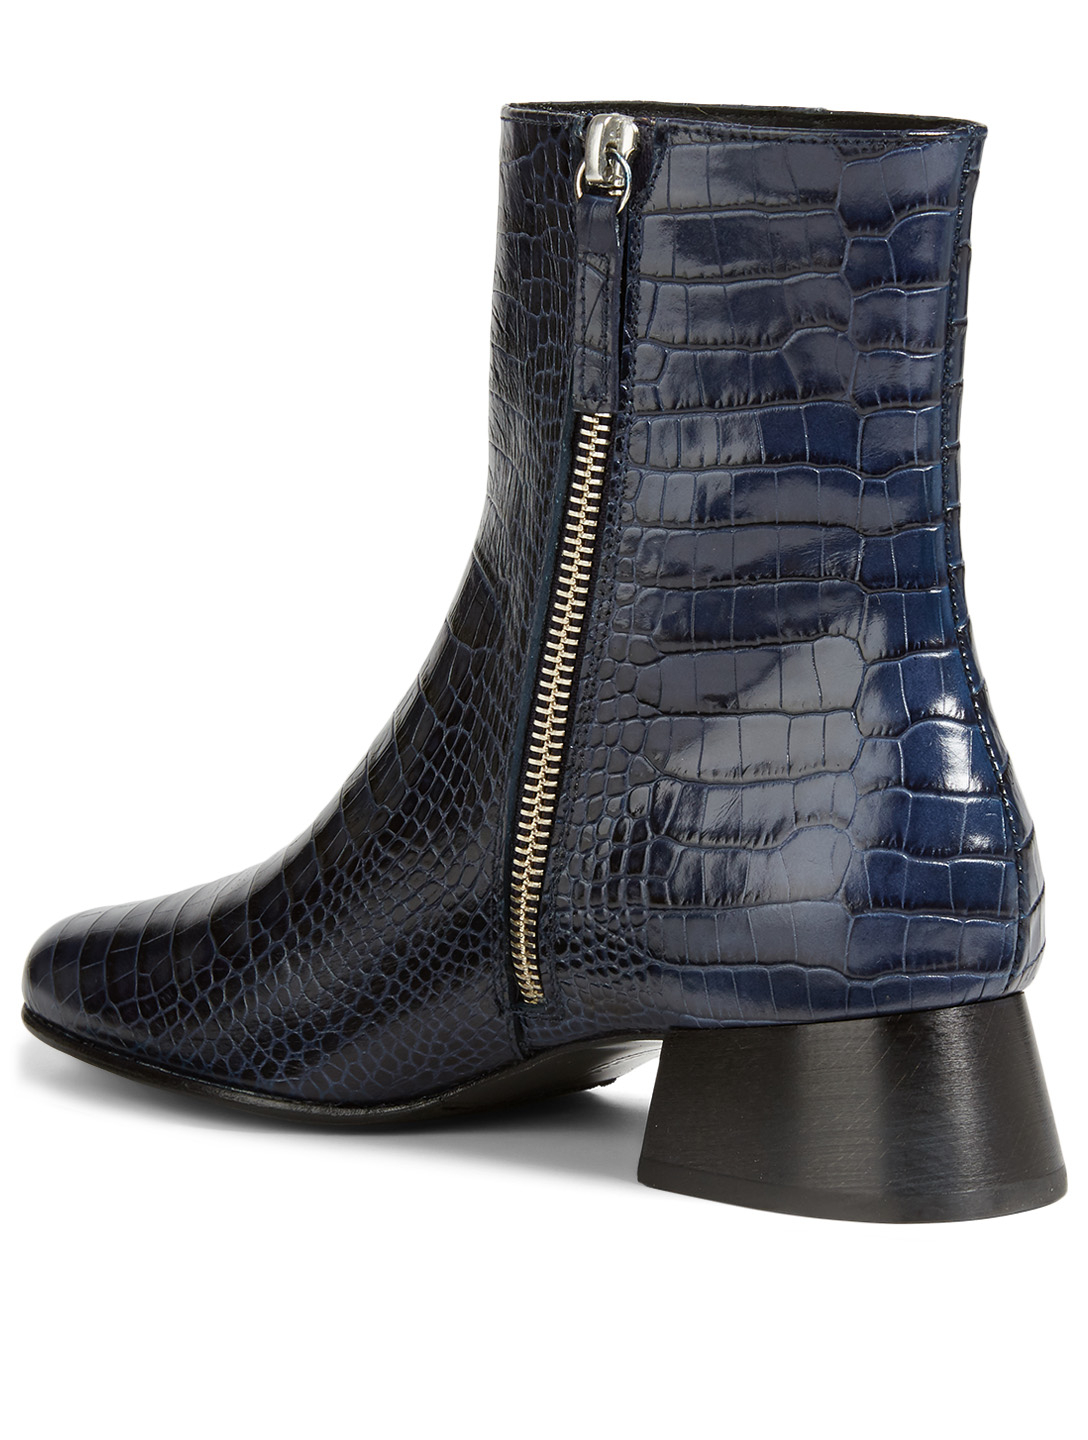 FREDA SALVADOR Tina Croc-Embossed Leather Heeled Ankle Boots Women's Blue